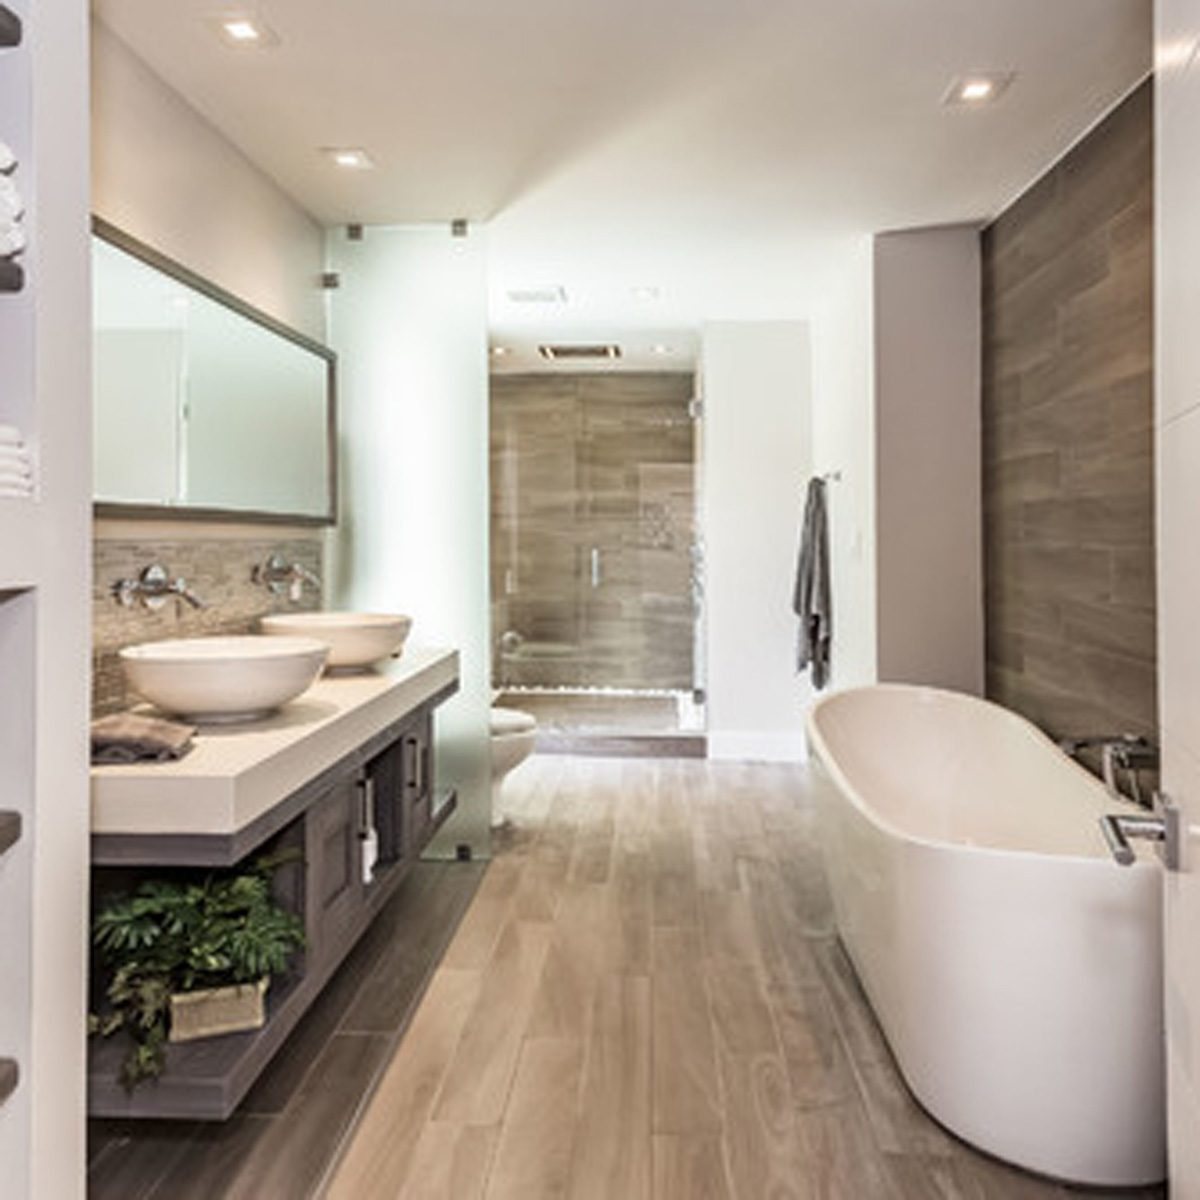 Bathroom Trends On The Way Out The Family Handyman